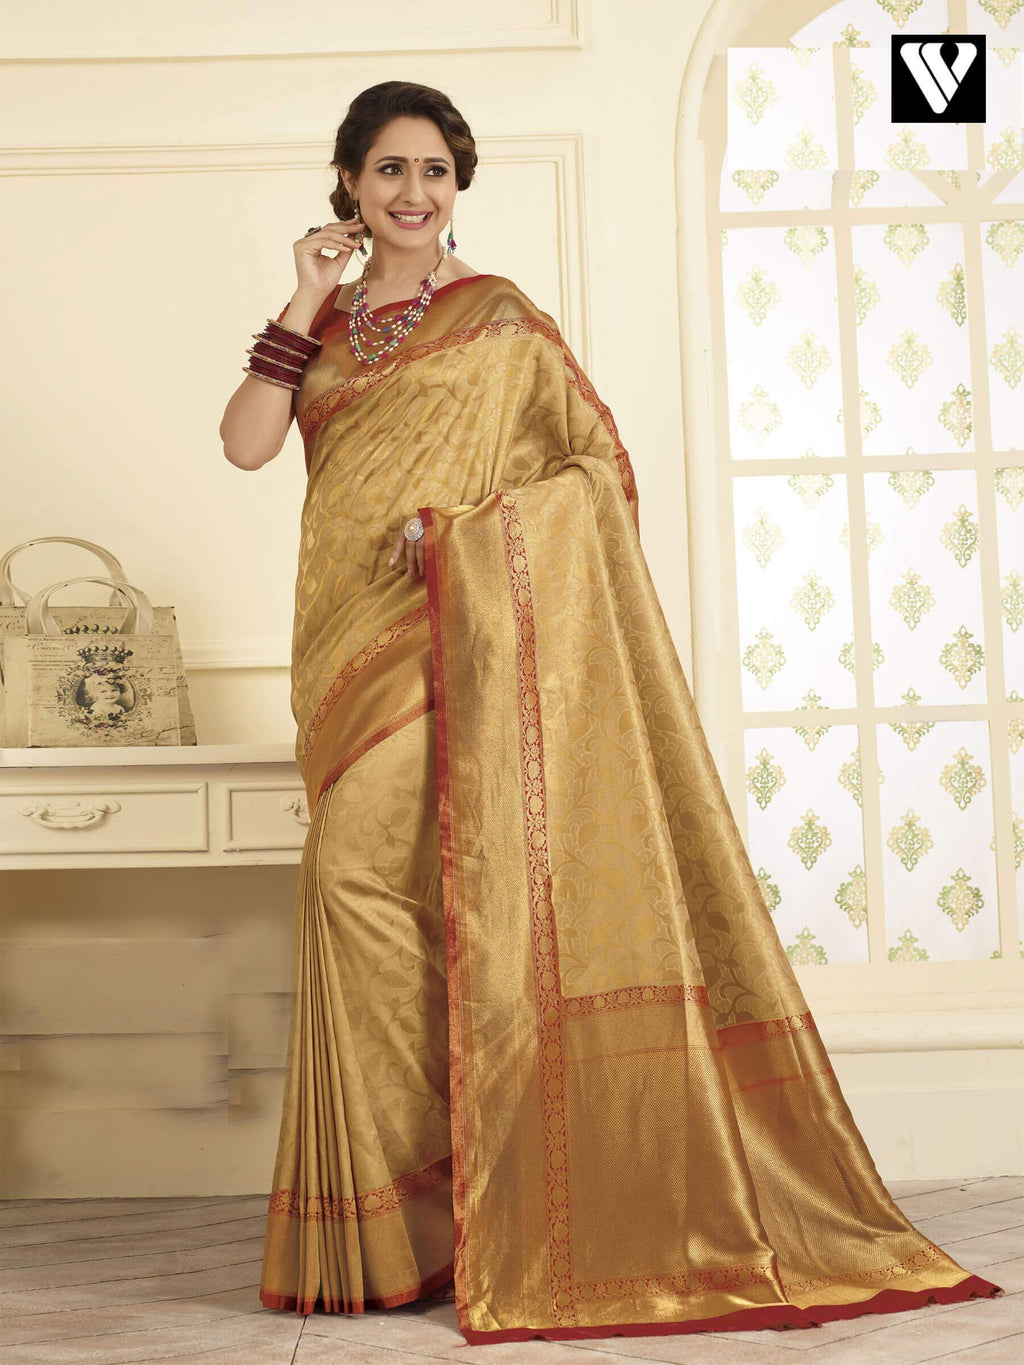 Latest Wedding Wear Banarasi Art Silk Sarees In Beige Gold